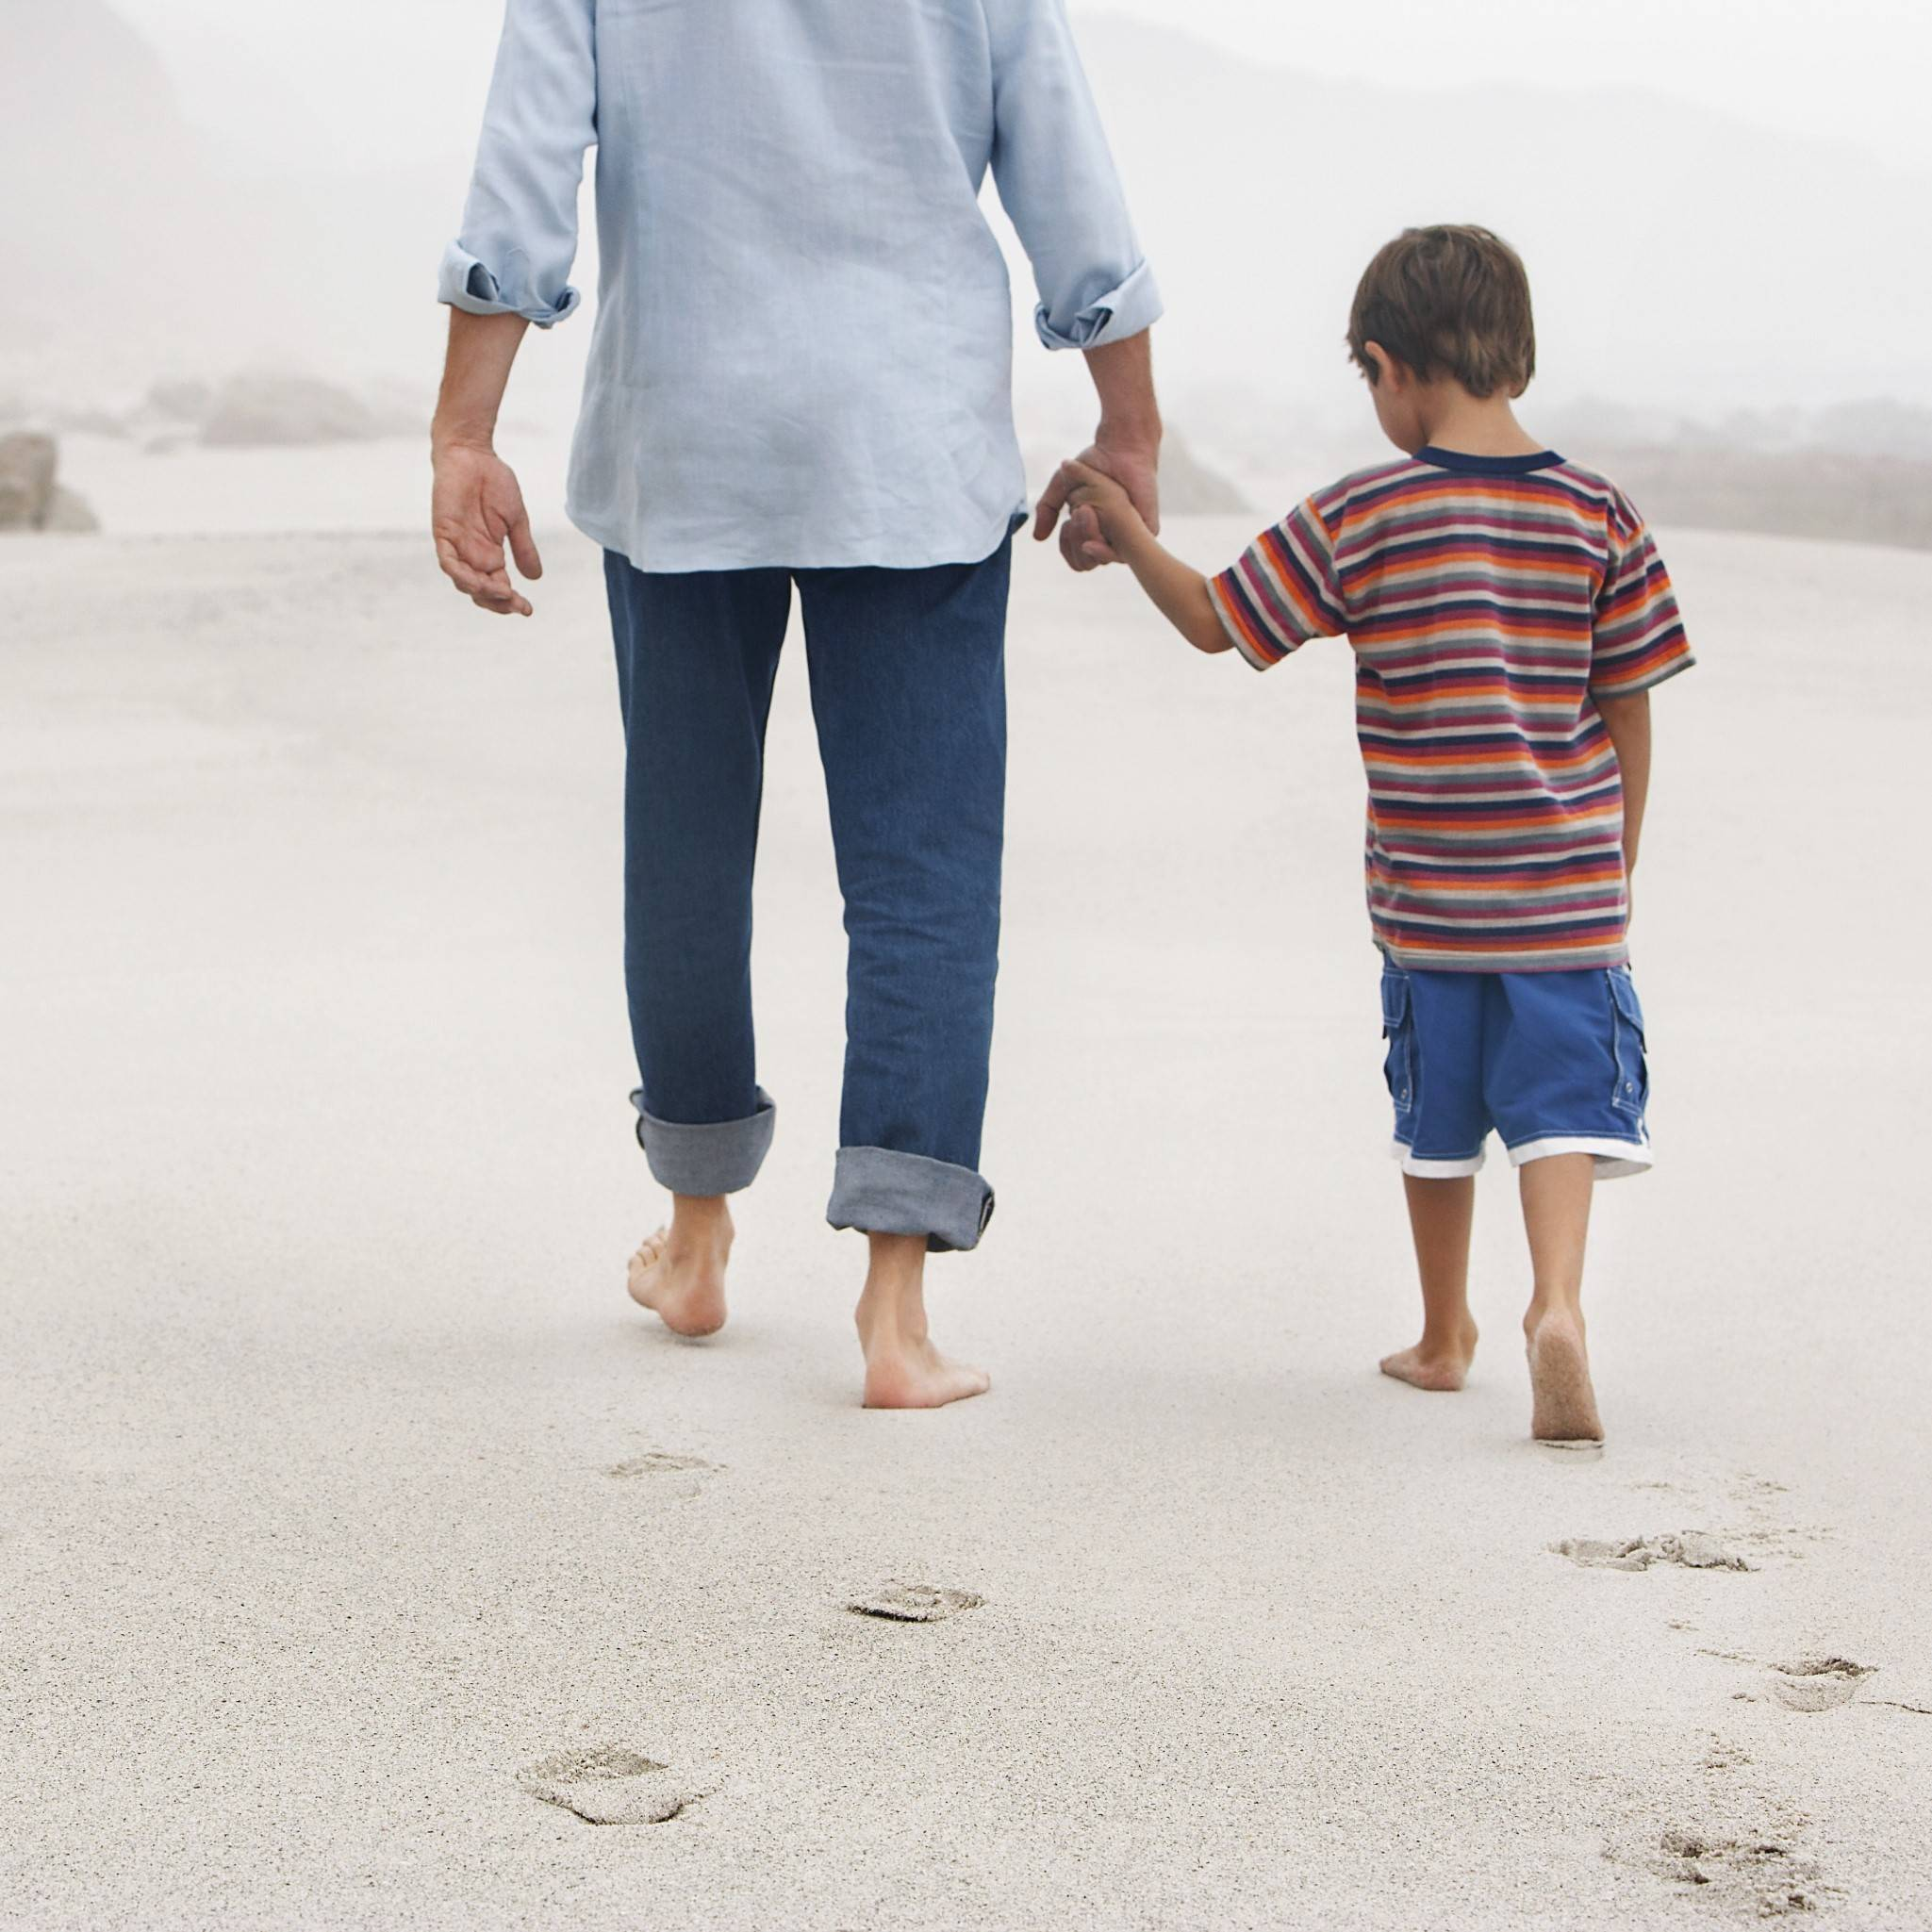 Flexible working could improve mental health and lives of fathers